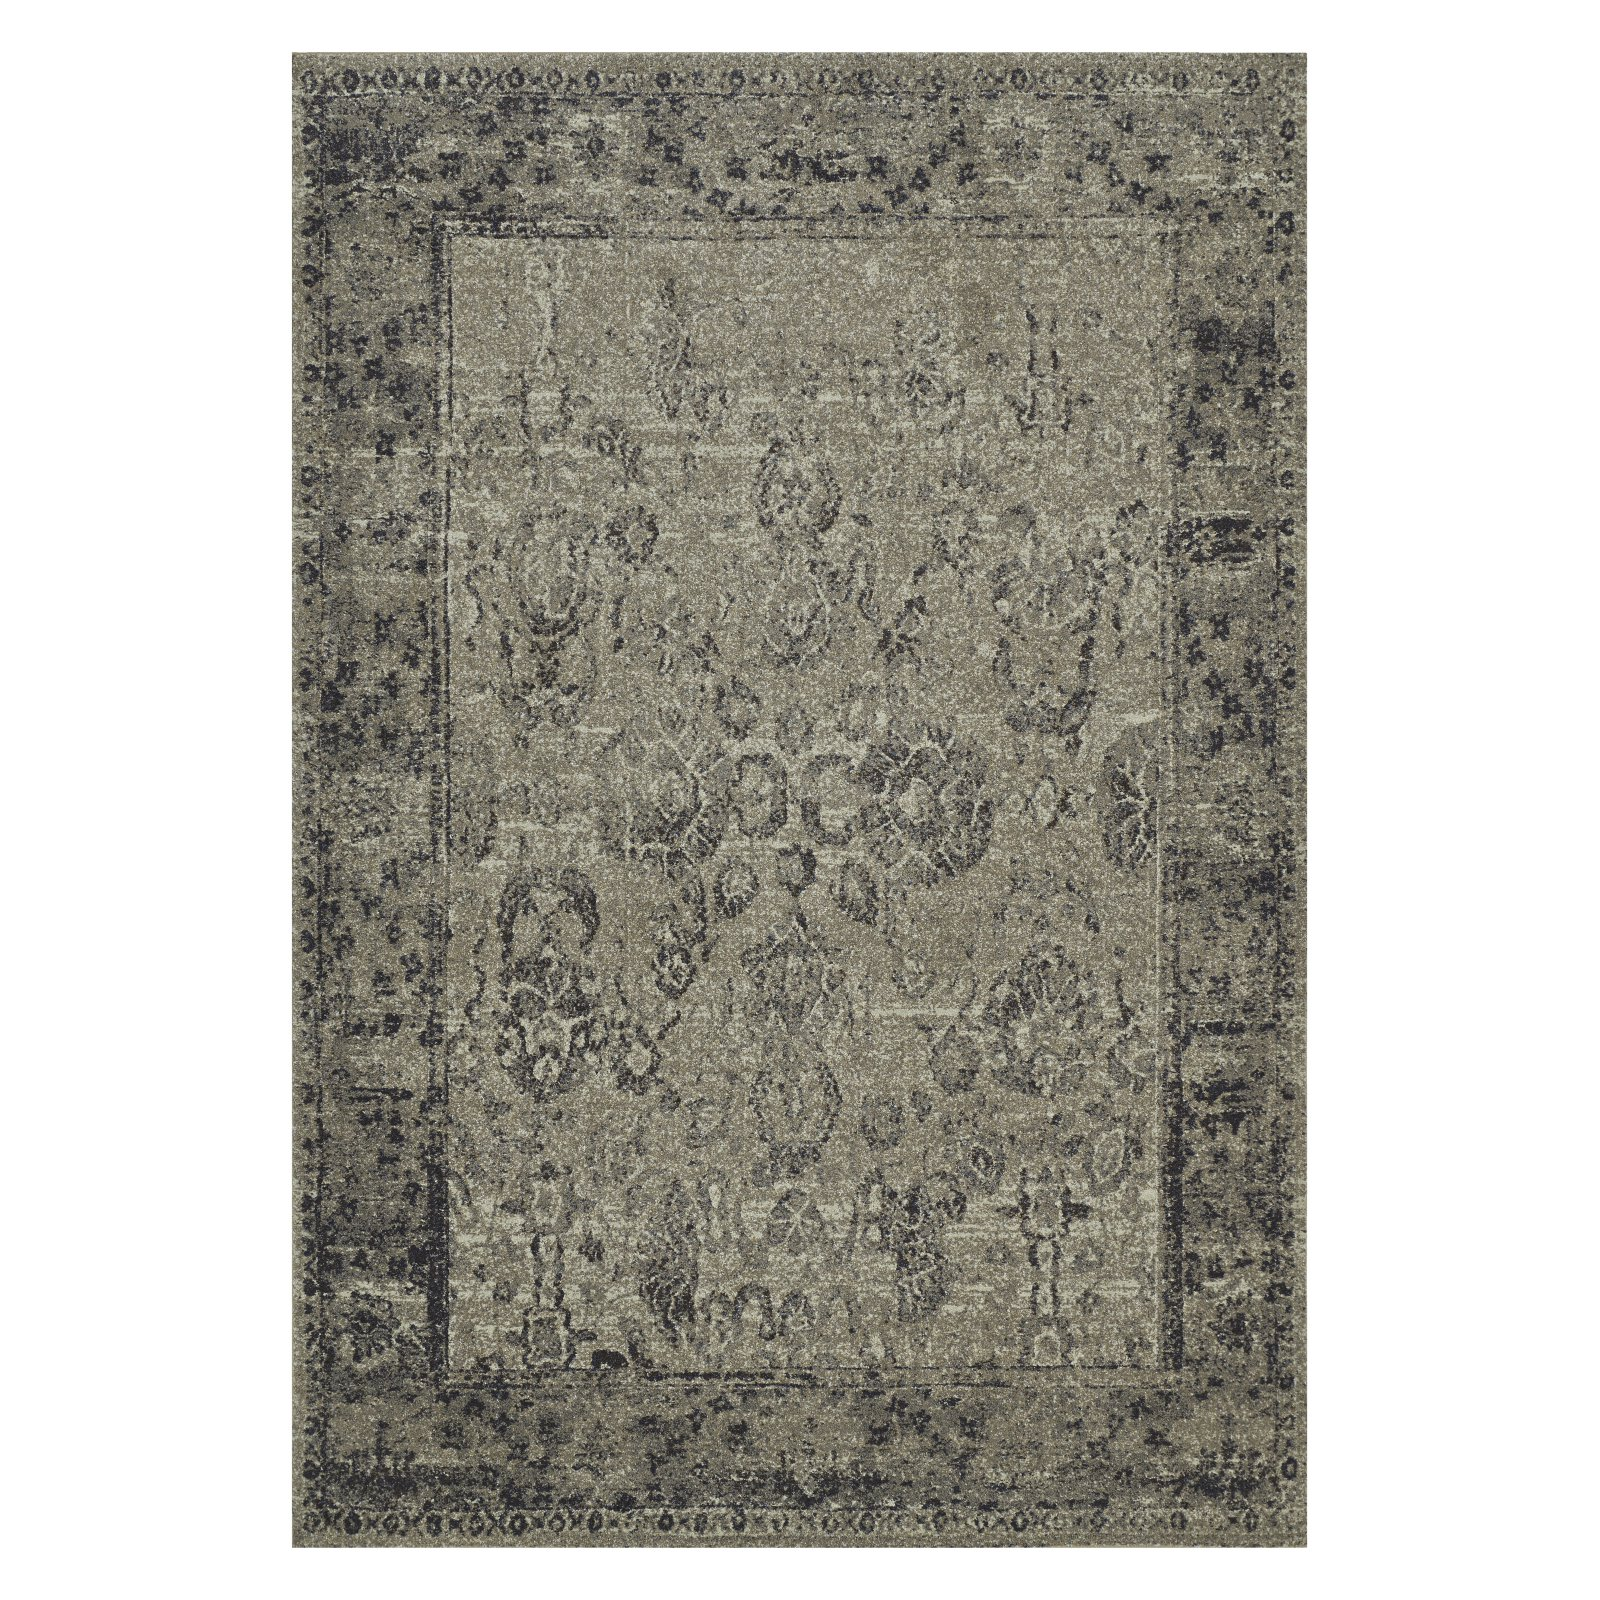 Dalyn Geneva GV702 Indoor Area Rug